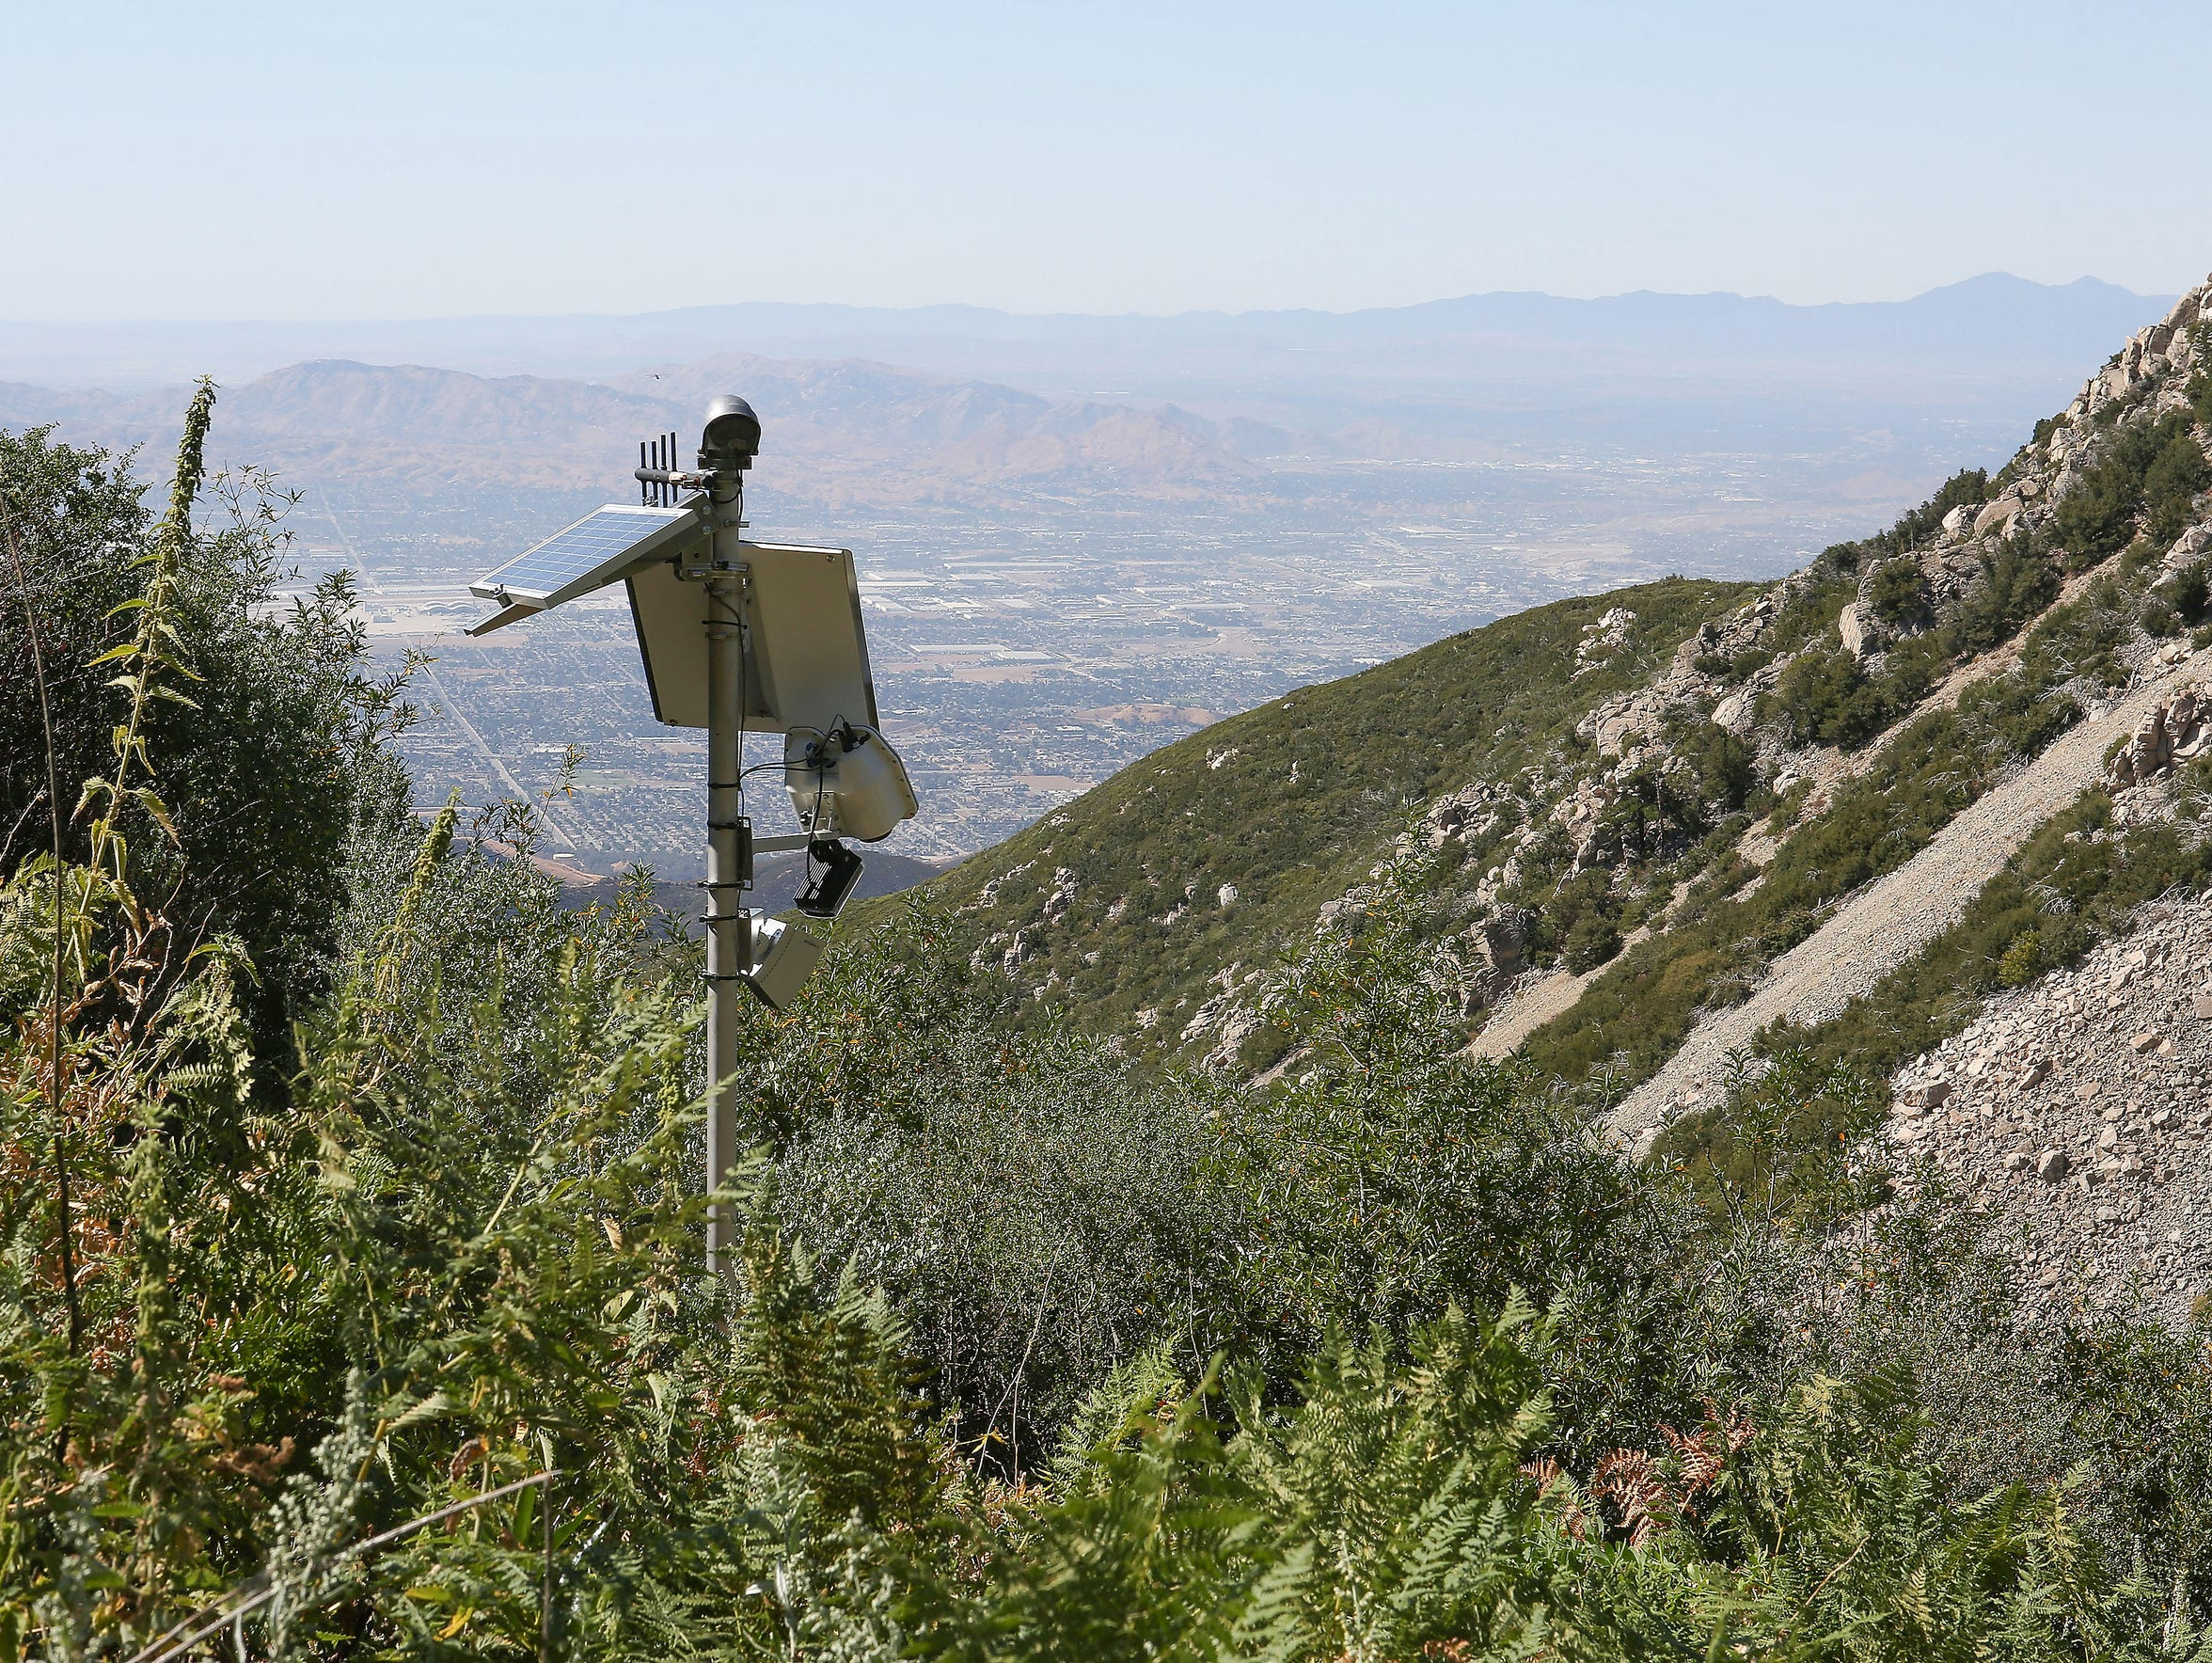 A pole mounted with a camera and other instruments